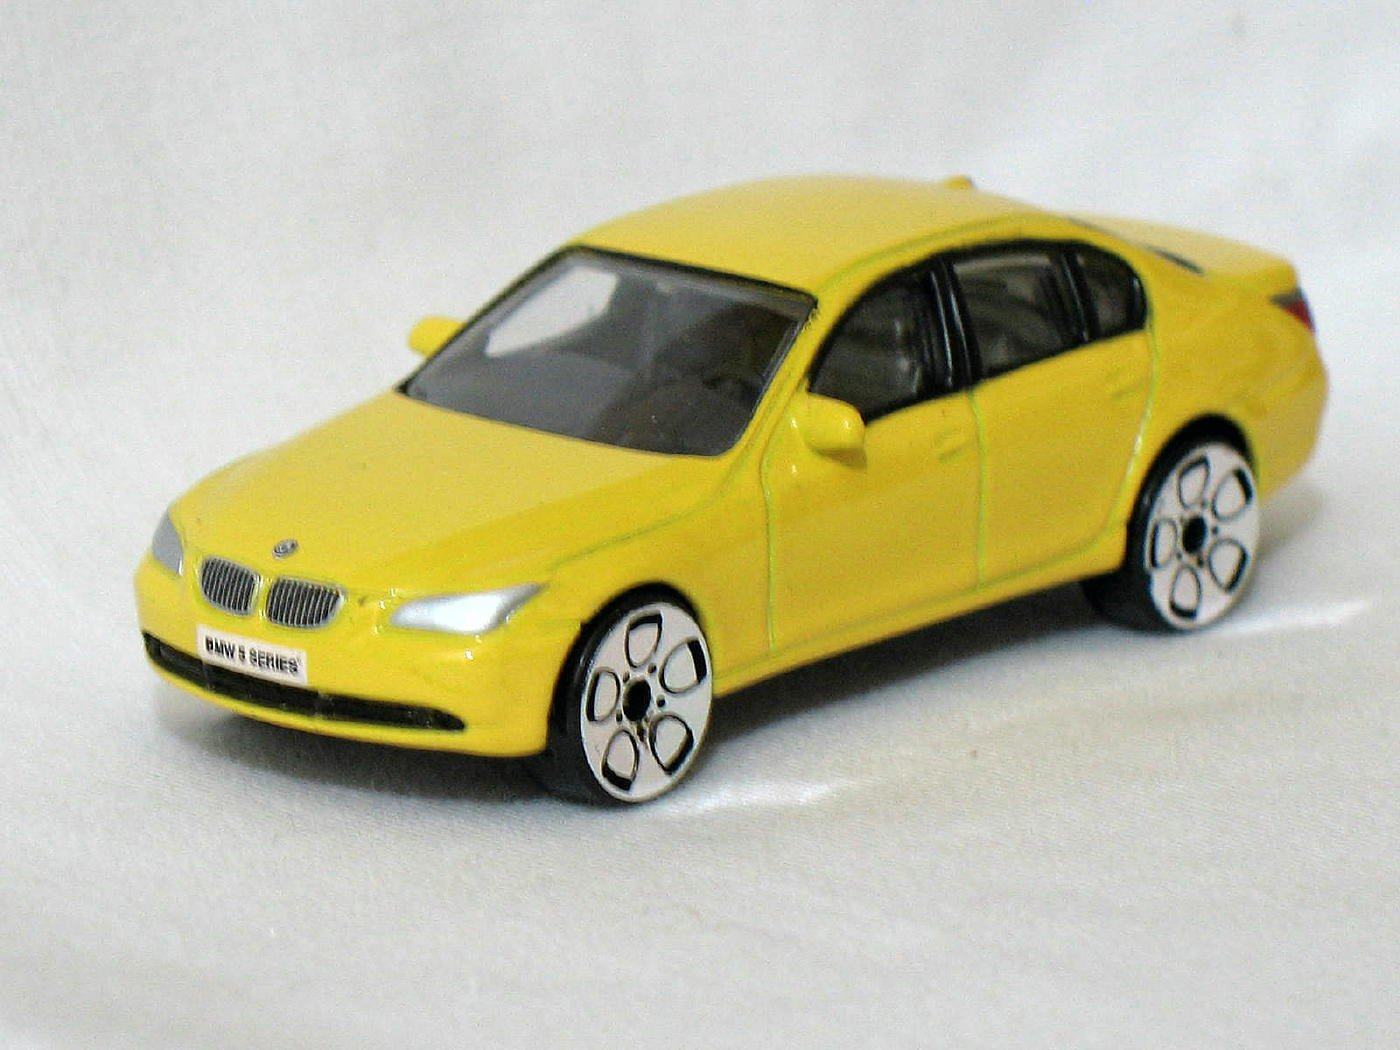 BMW 5 Series Yellow 1/61 Die Cast Model Car (Rare)